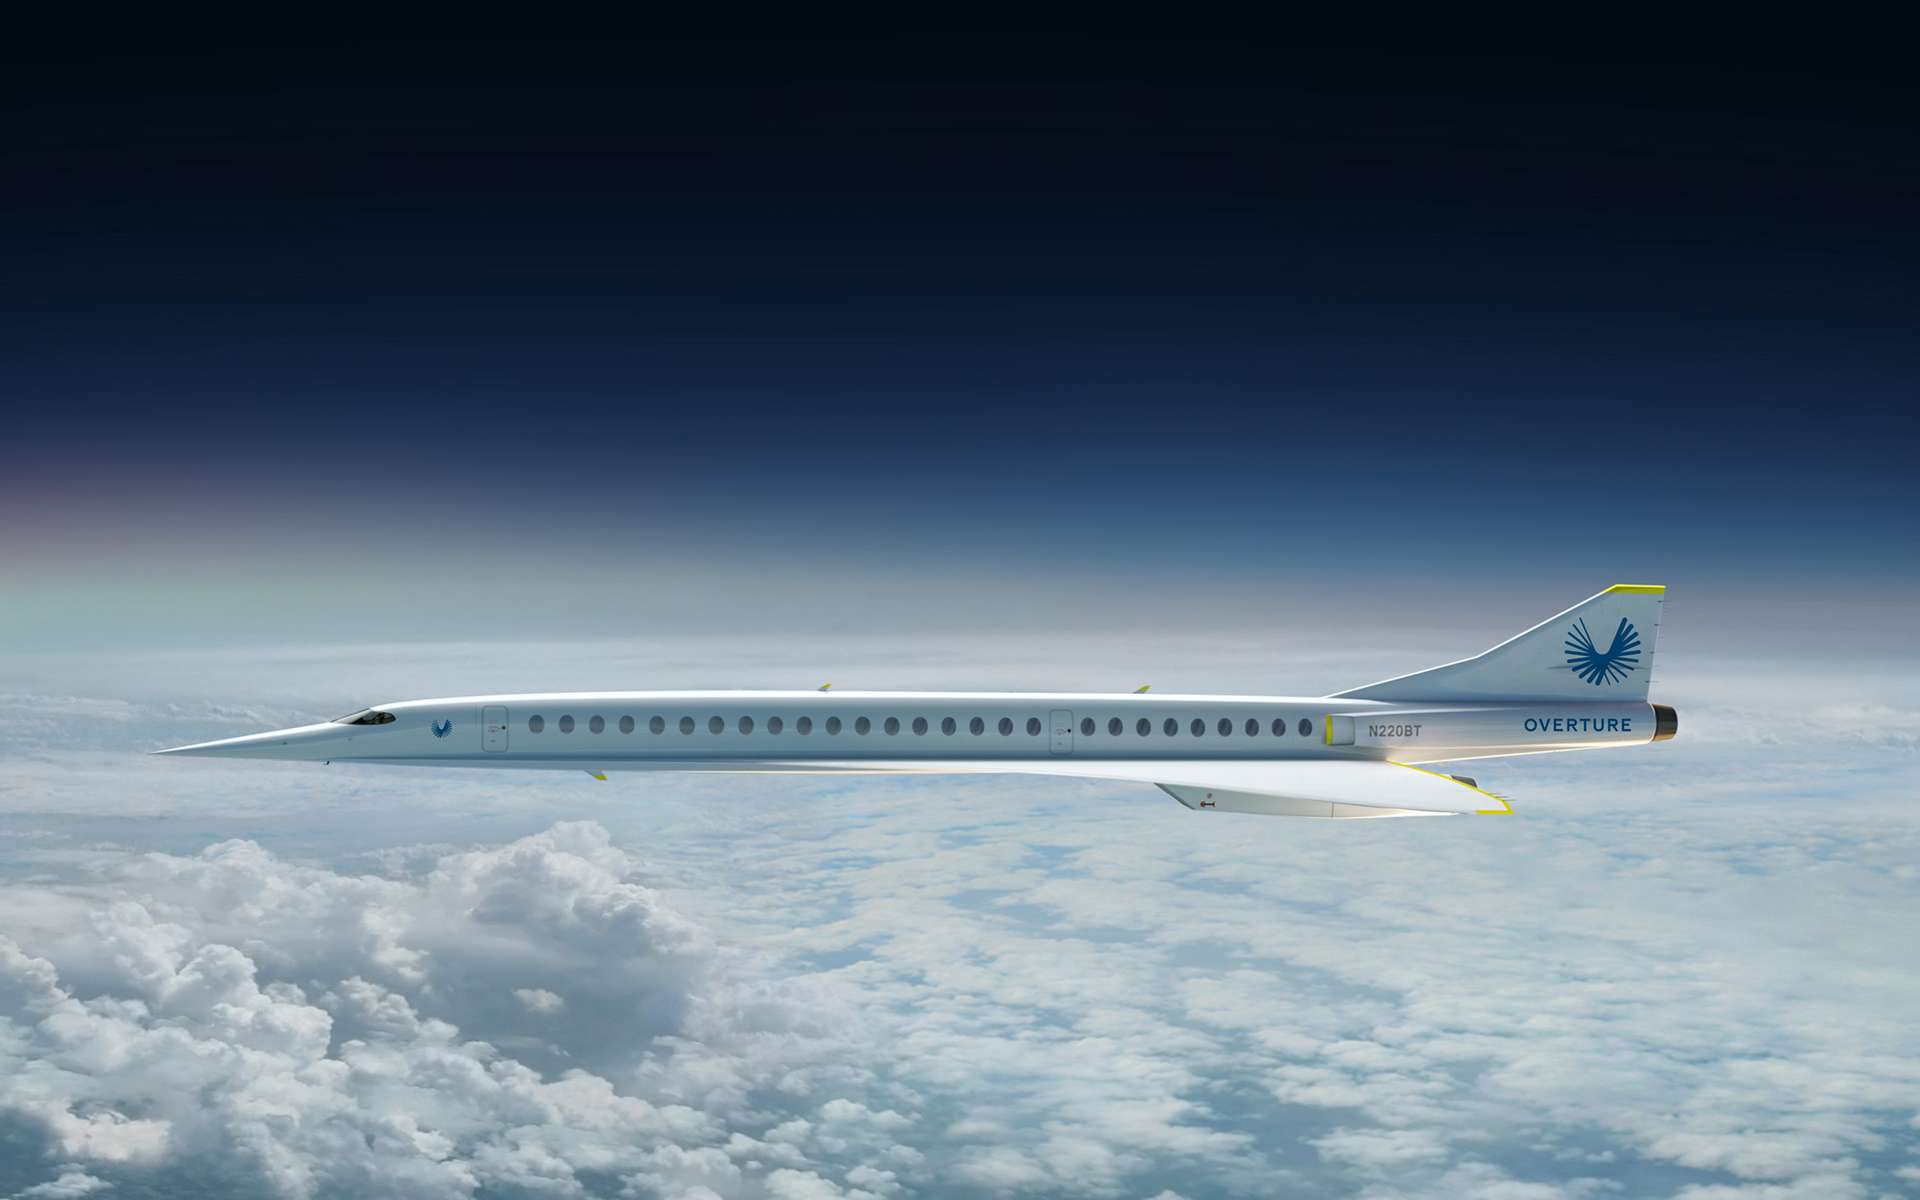 L'avion supersonique Overture de la société Boom Supersonic qui ambitionne de faire voler un avion de transport civil de 55 passagers à la vitesse de Mach 2,2. © Boom Technologies